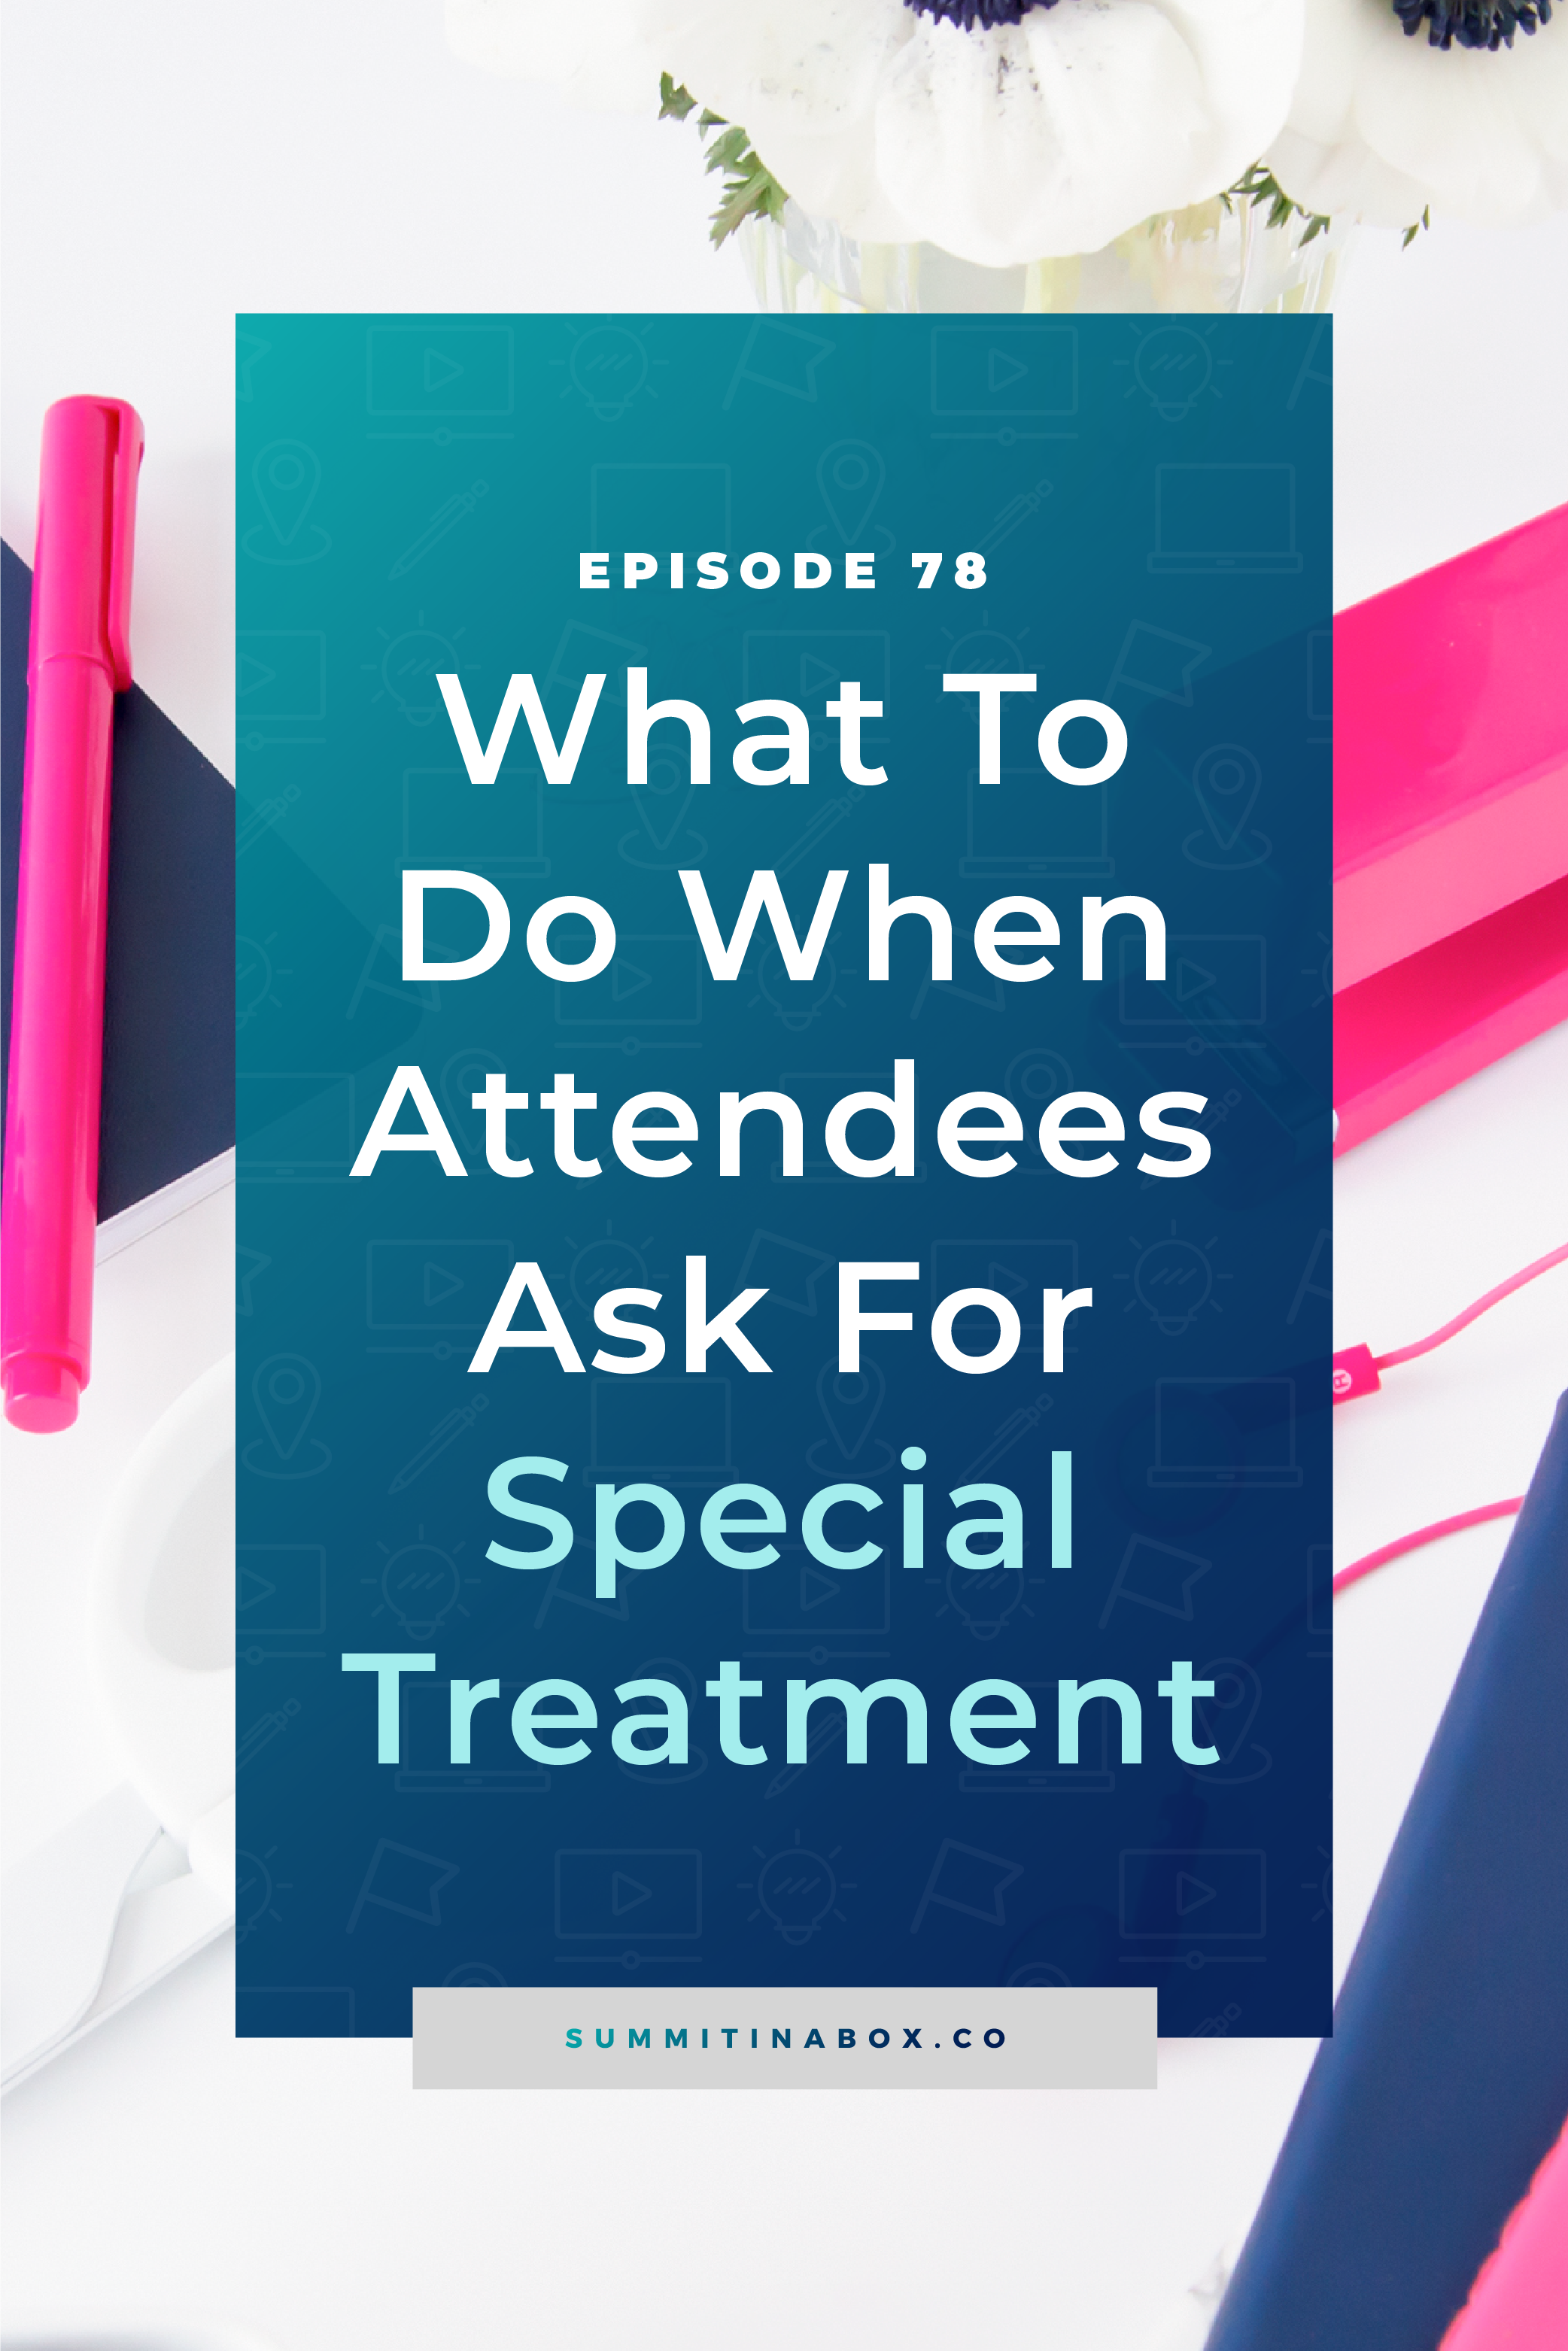 No matter how clear you make the details and policies of your virtual summit, you'll always have attendees ask for special treatment. Here's how to handle it.